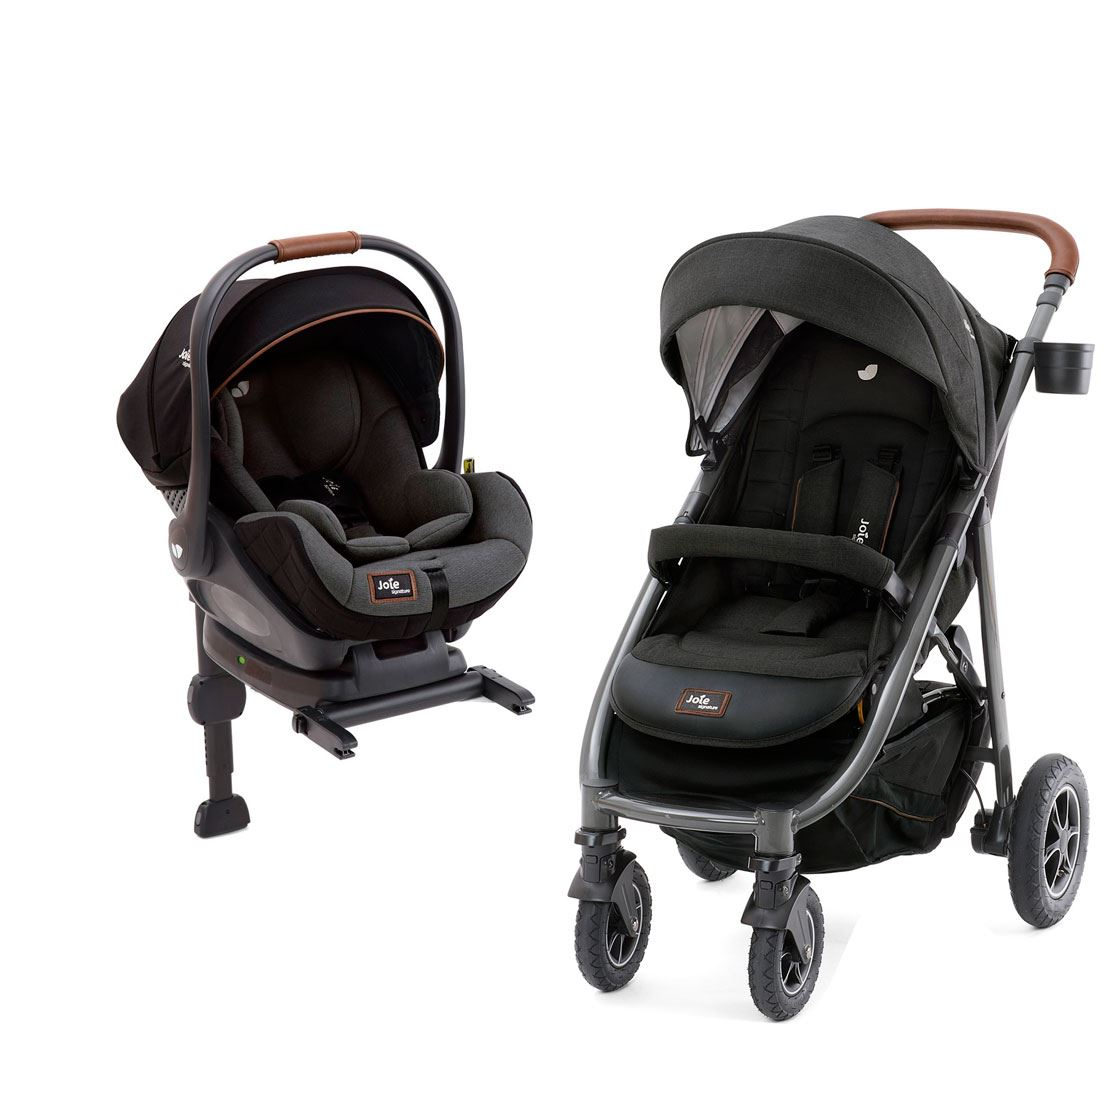 Duo Mytrax Flex Signature con i-Level de Joie